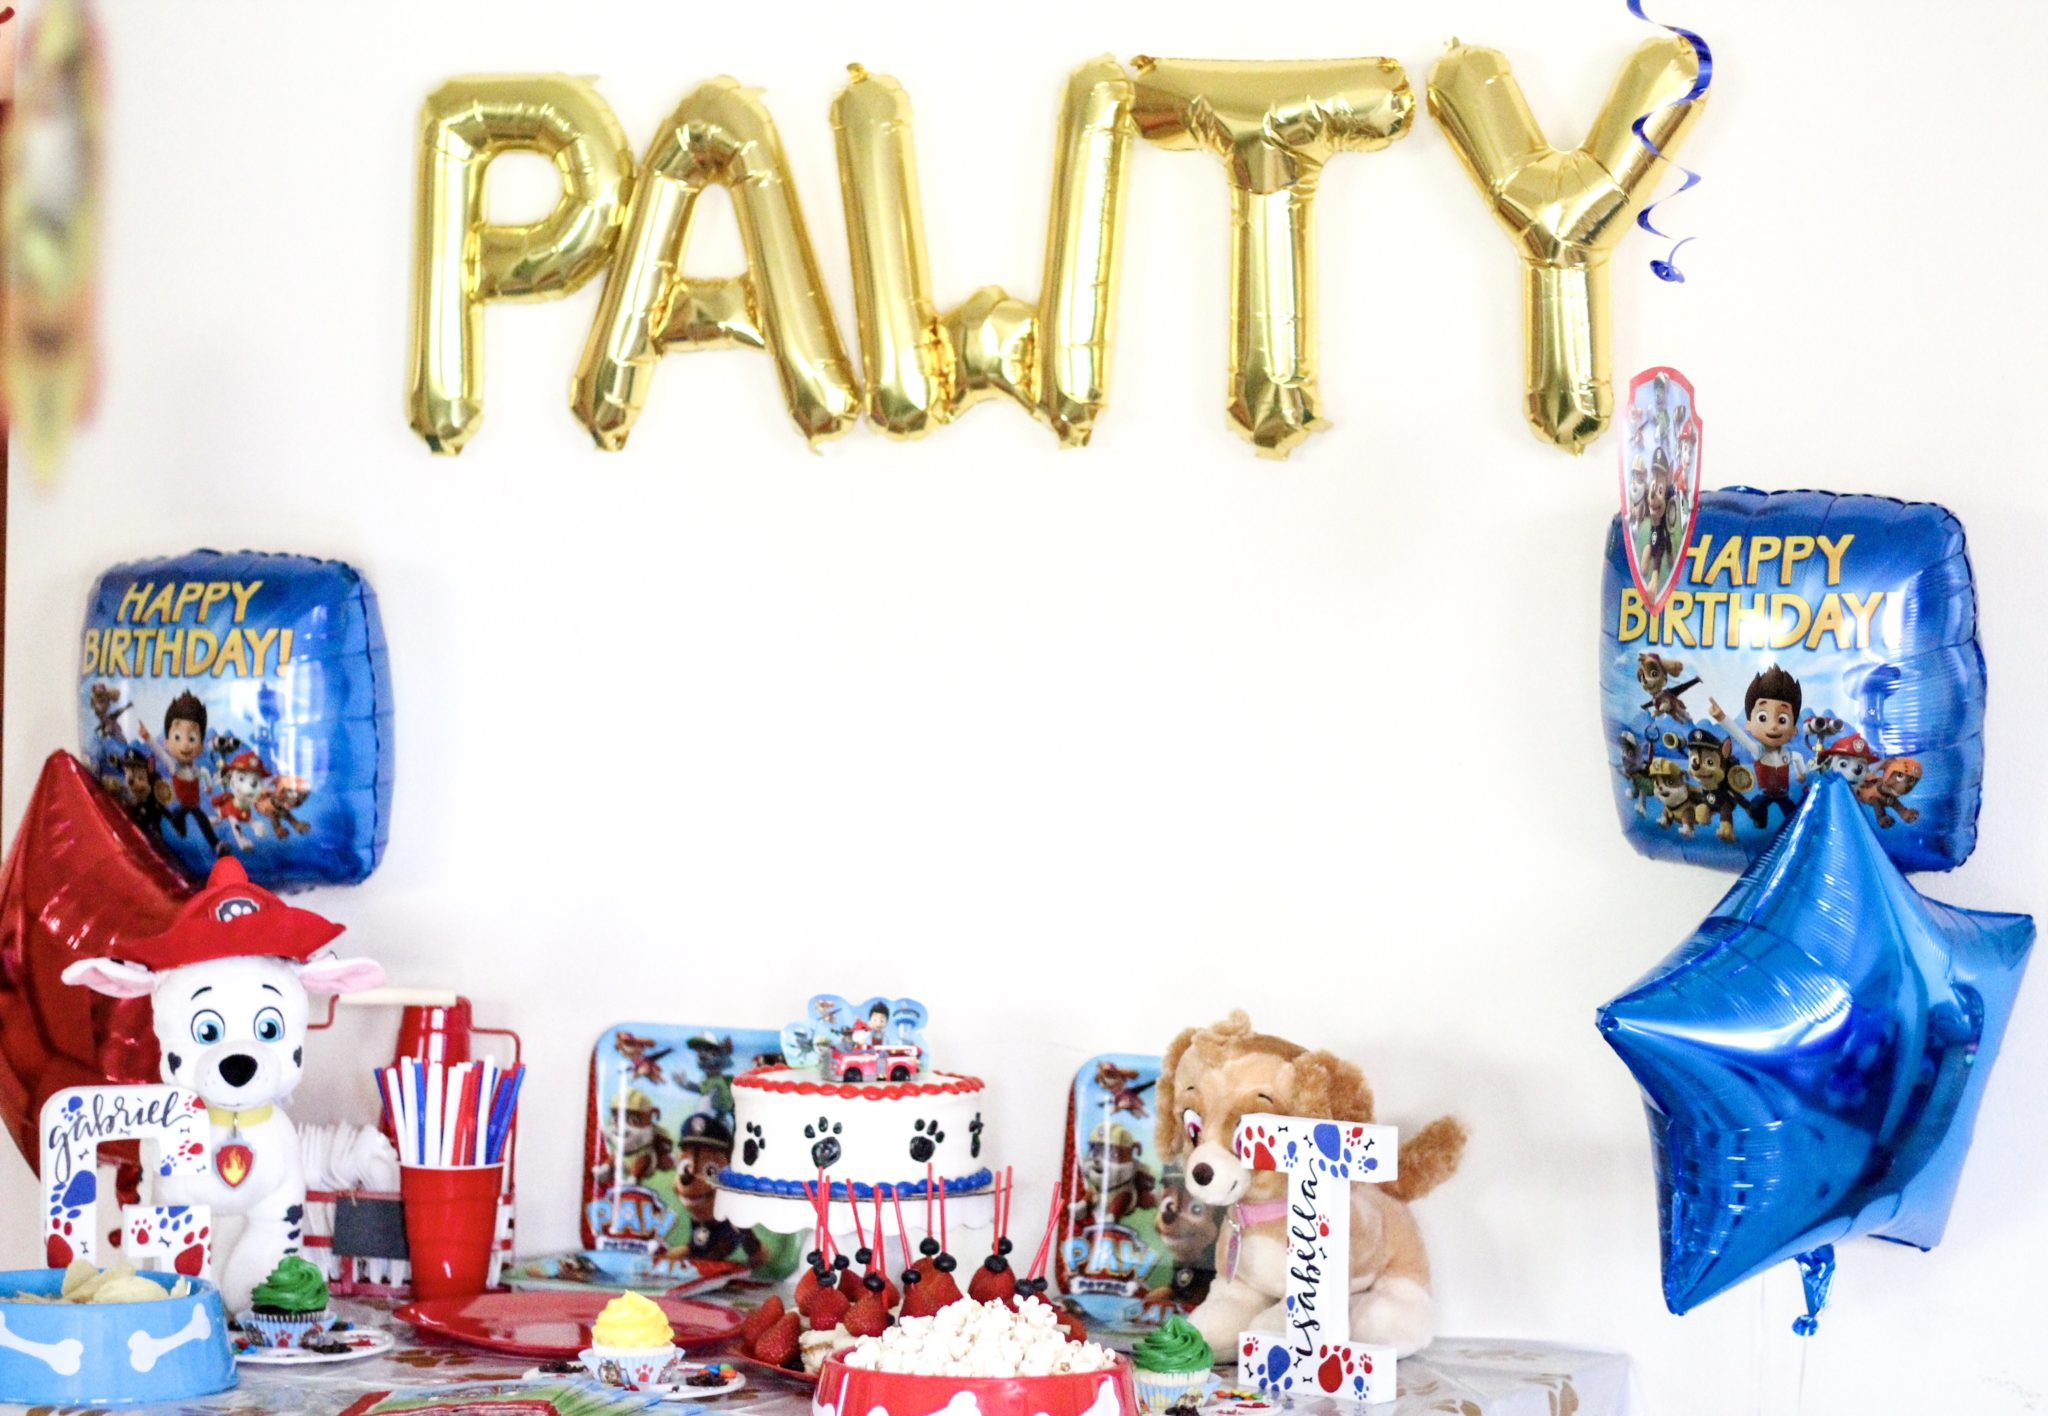 paw patrol birthday party, paw patrol supplies amazon, paw patrol party supplies target, paw patrol party supplies walmart, paw patrol dog bowls, paw patrol decorations, paw patrol ideas, paw patrol cake, paw patrol birthday party for boys, paw patrol birthday party for girls